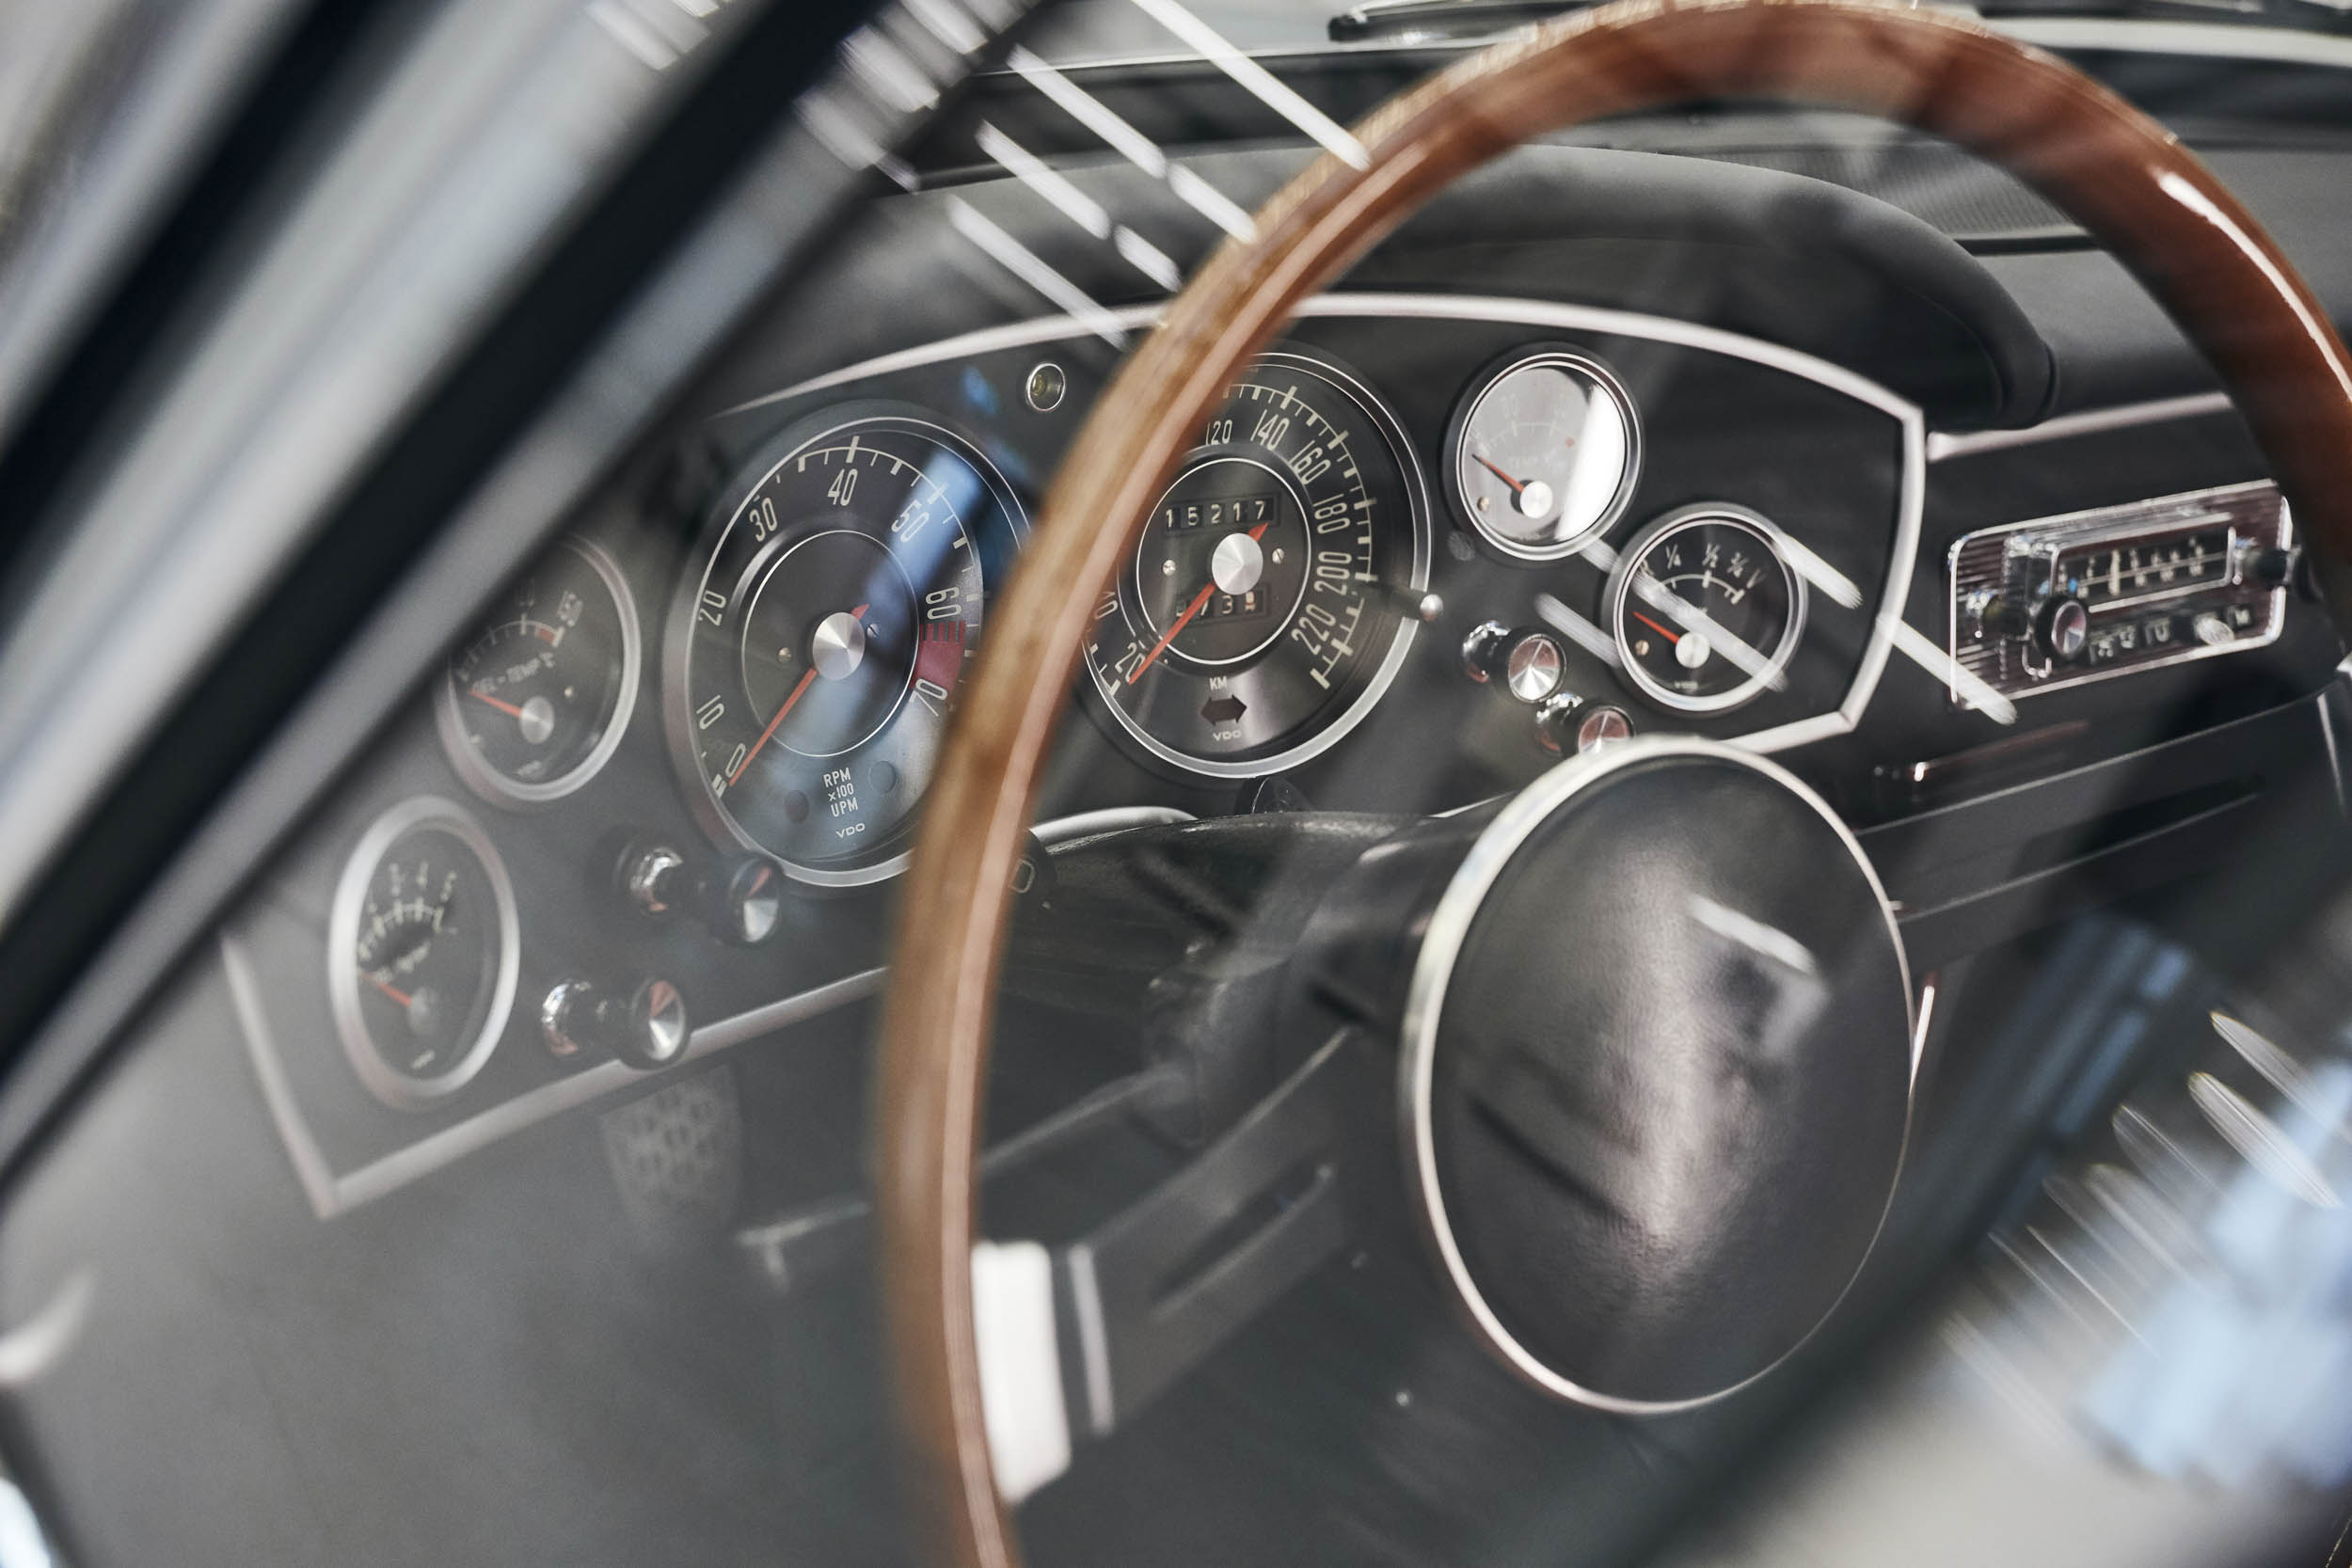 BMW 1600 GT convertible gauge cluster